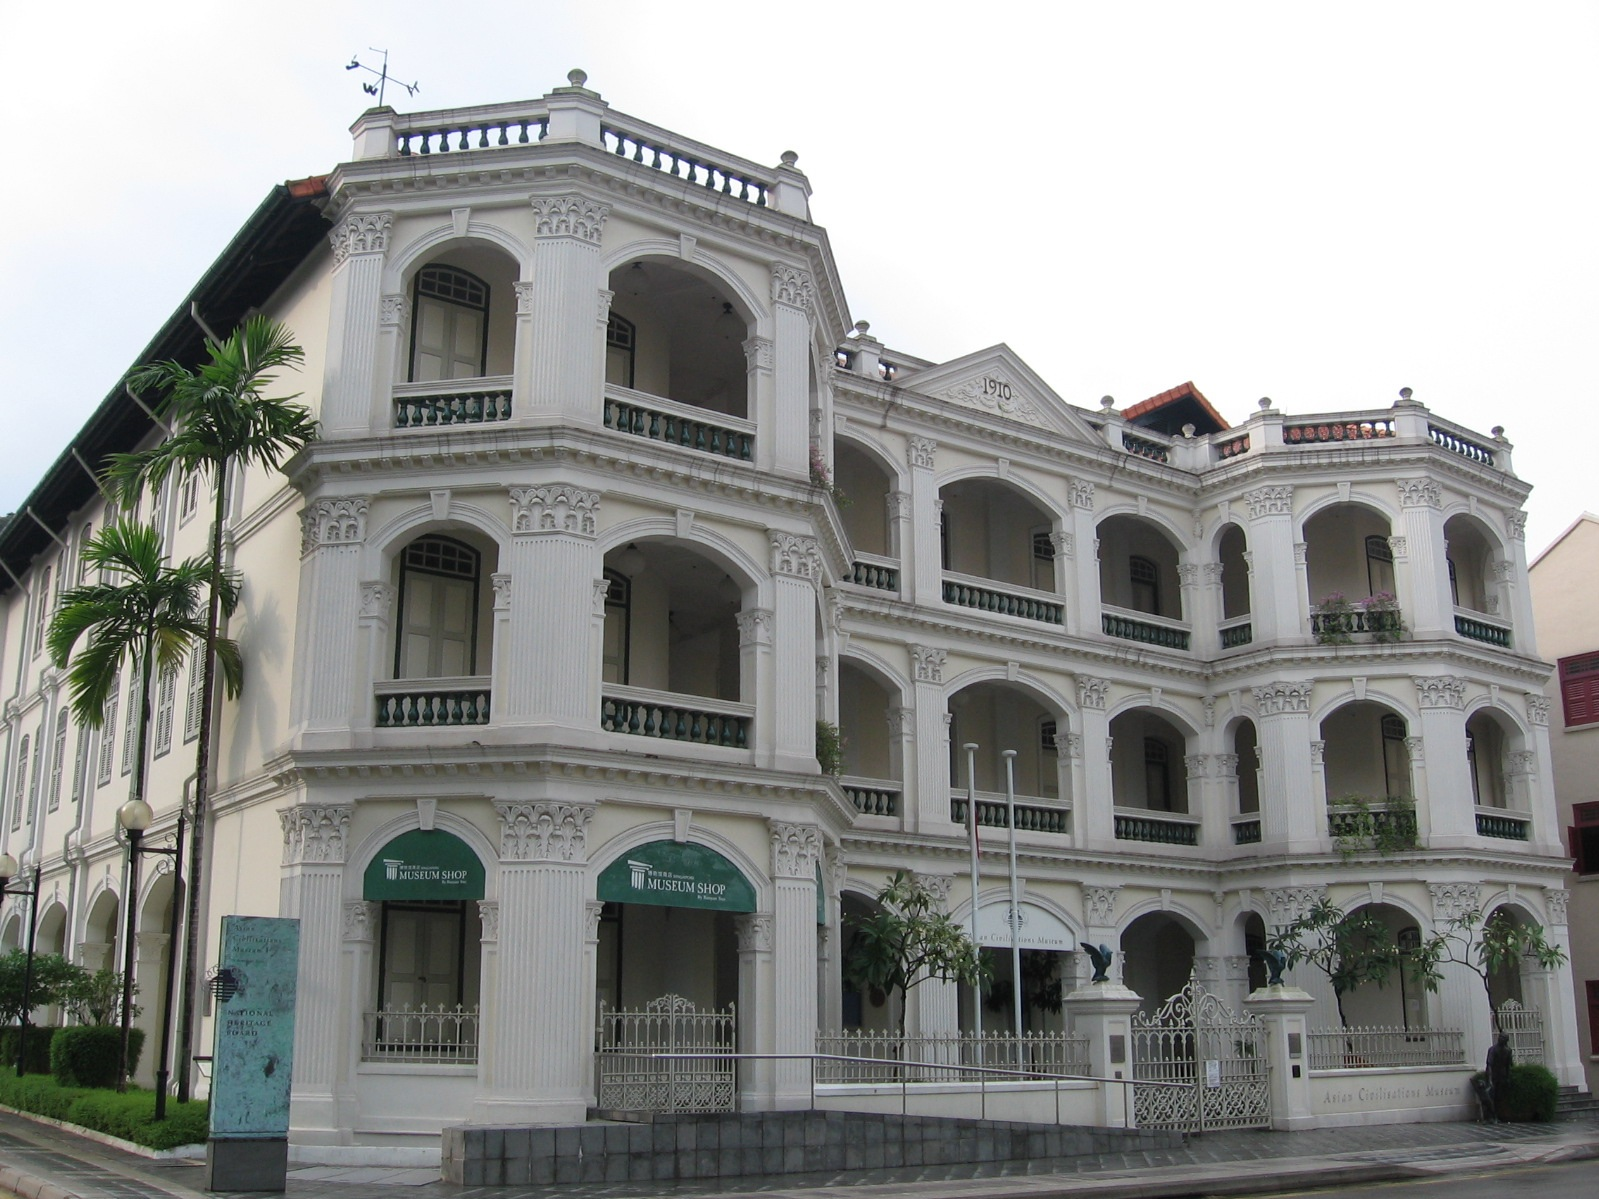 The original Tao Nan School, which currently houses the Peranakan Museum